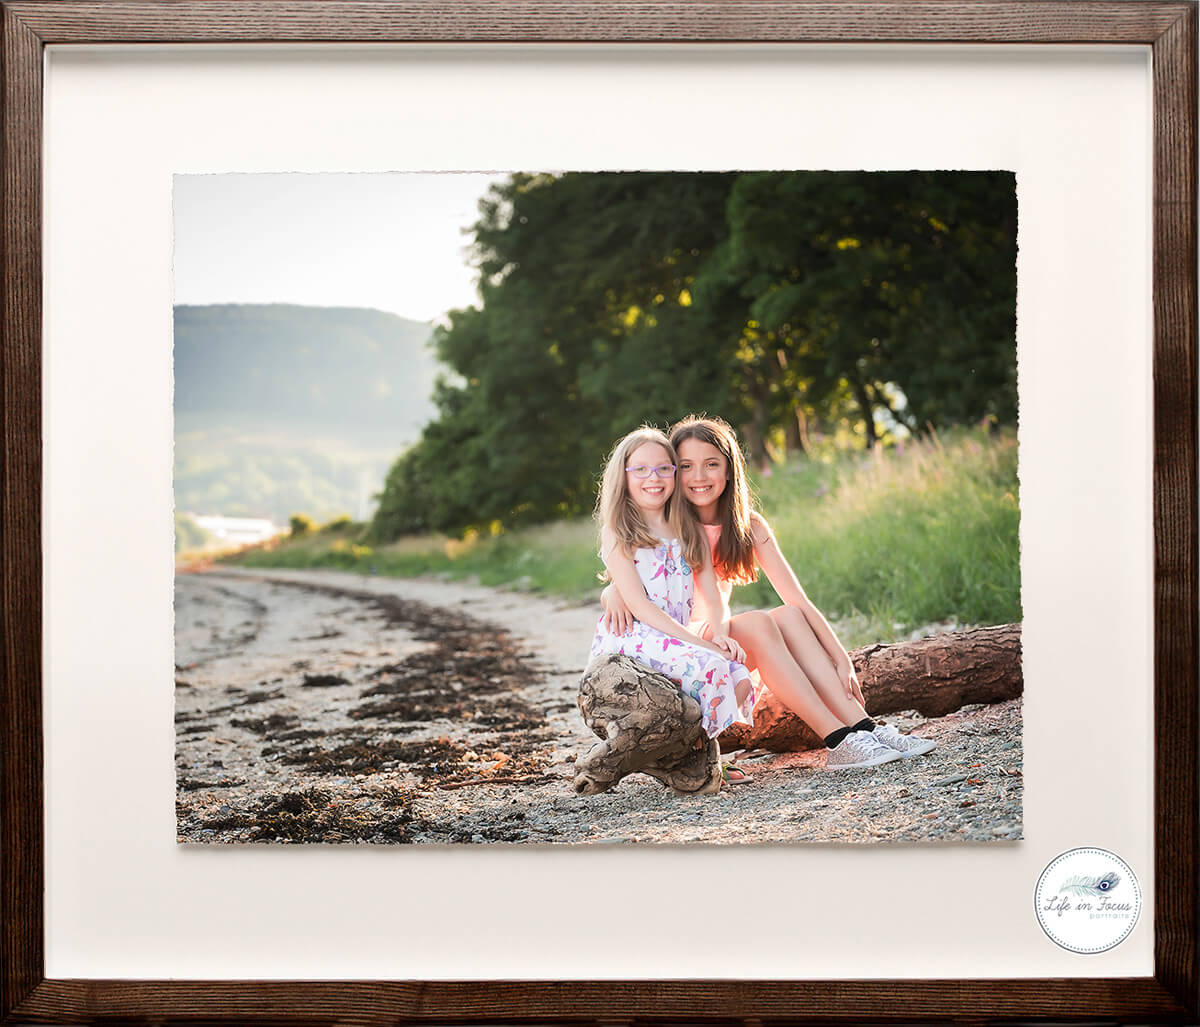 framed outdoor photo sisters on beach by loch Life in Focus Portraits child & family photographer Helensburgh & Loch Lomond